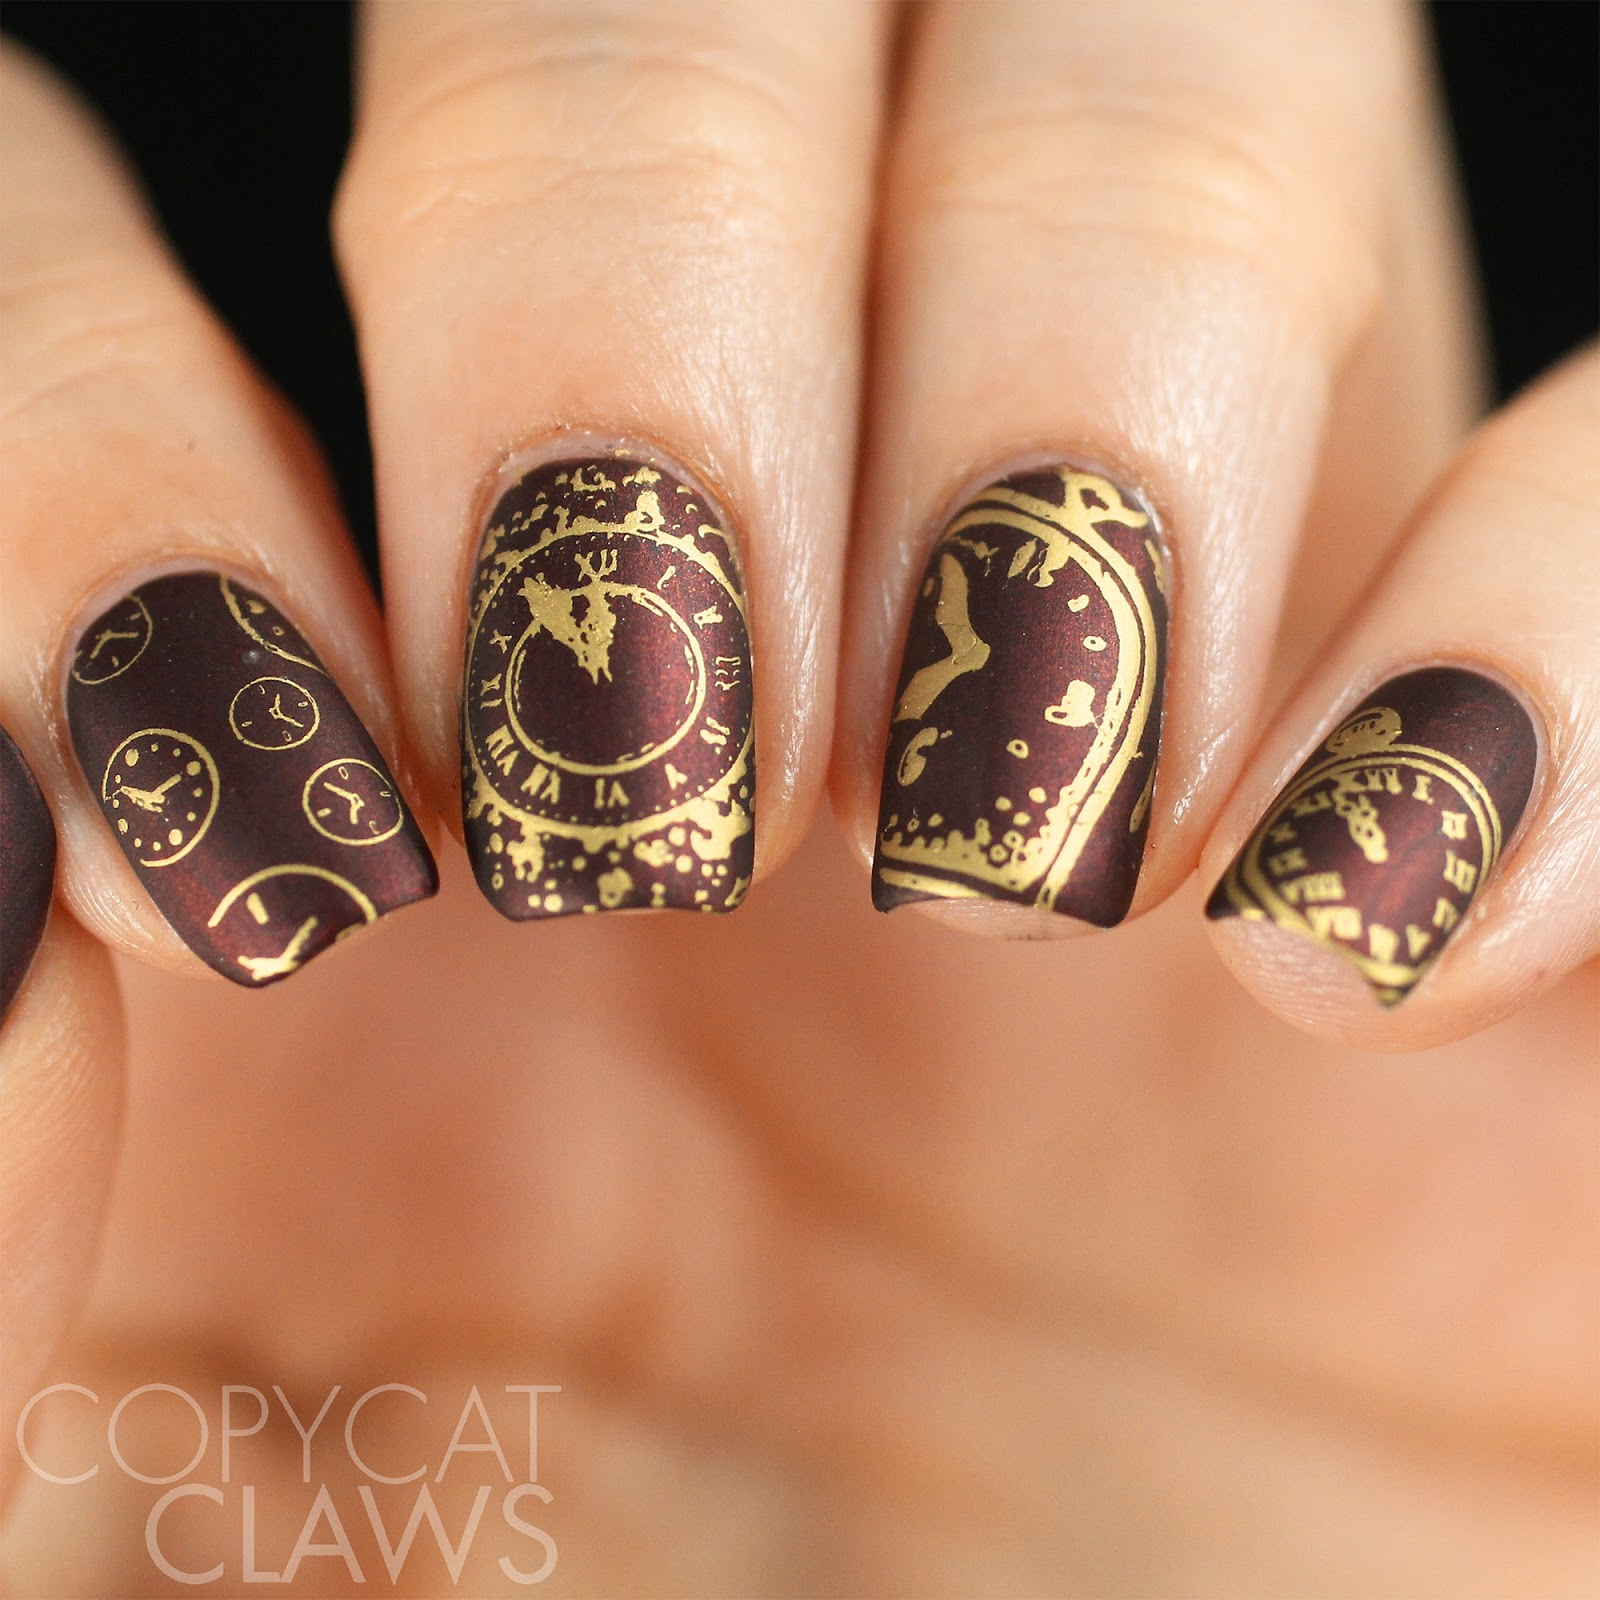 Copycat Claws: 26 Great Nail Art Ideas - New Year, New You